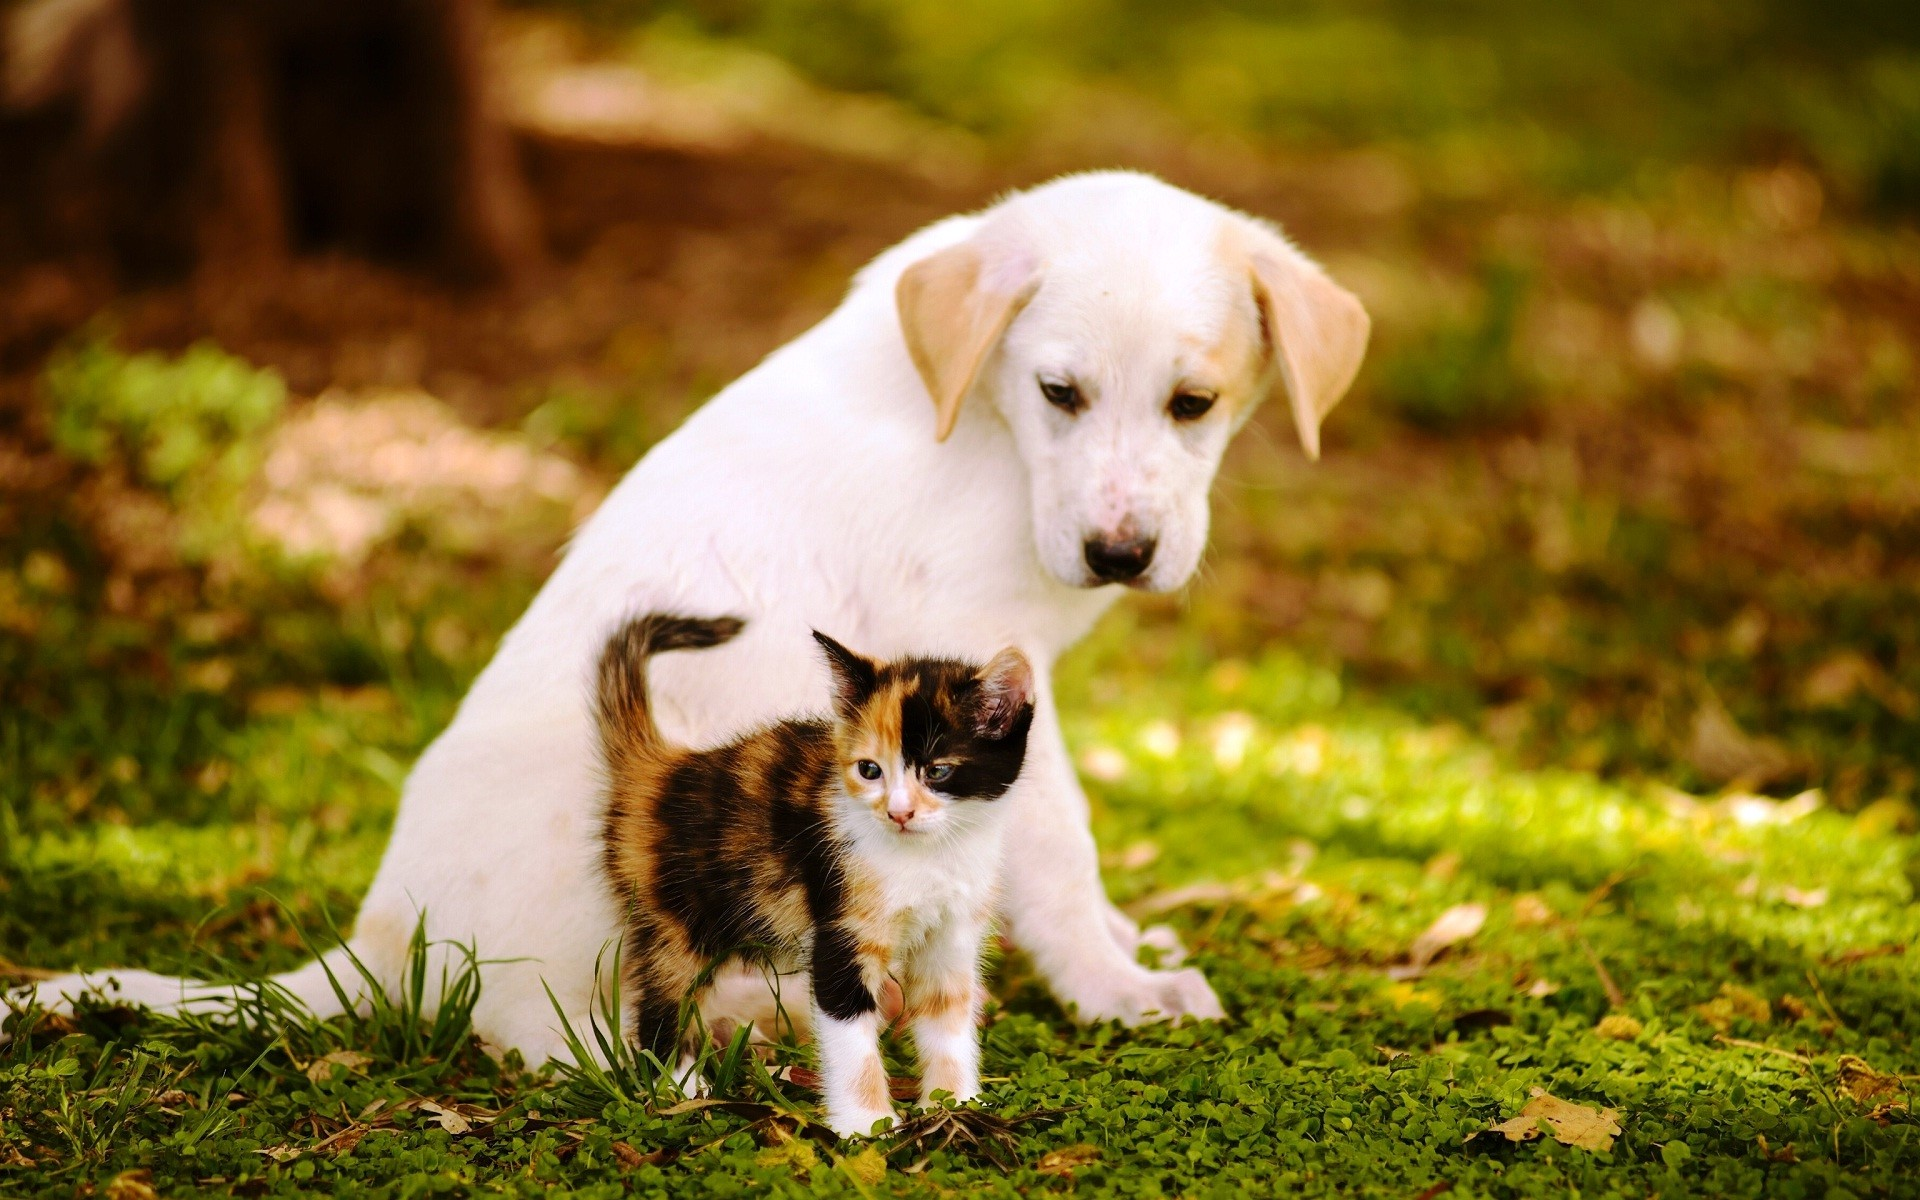 Cute baby dogs and cats – photo#6